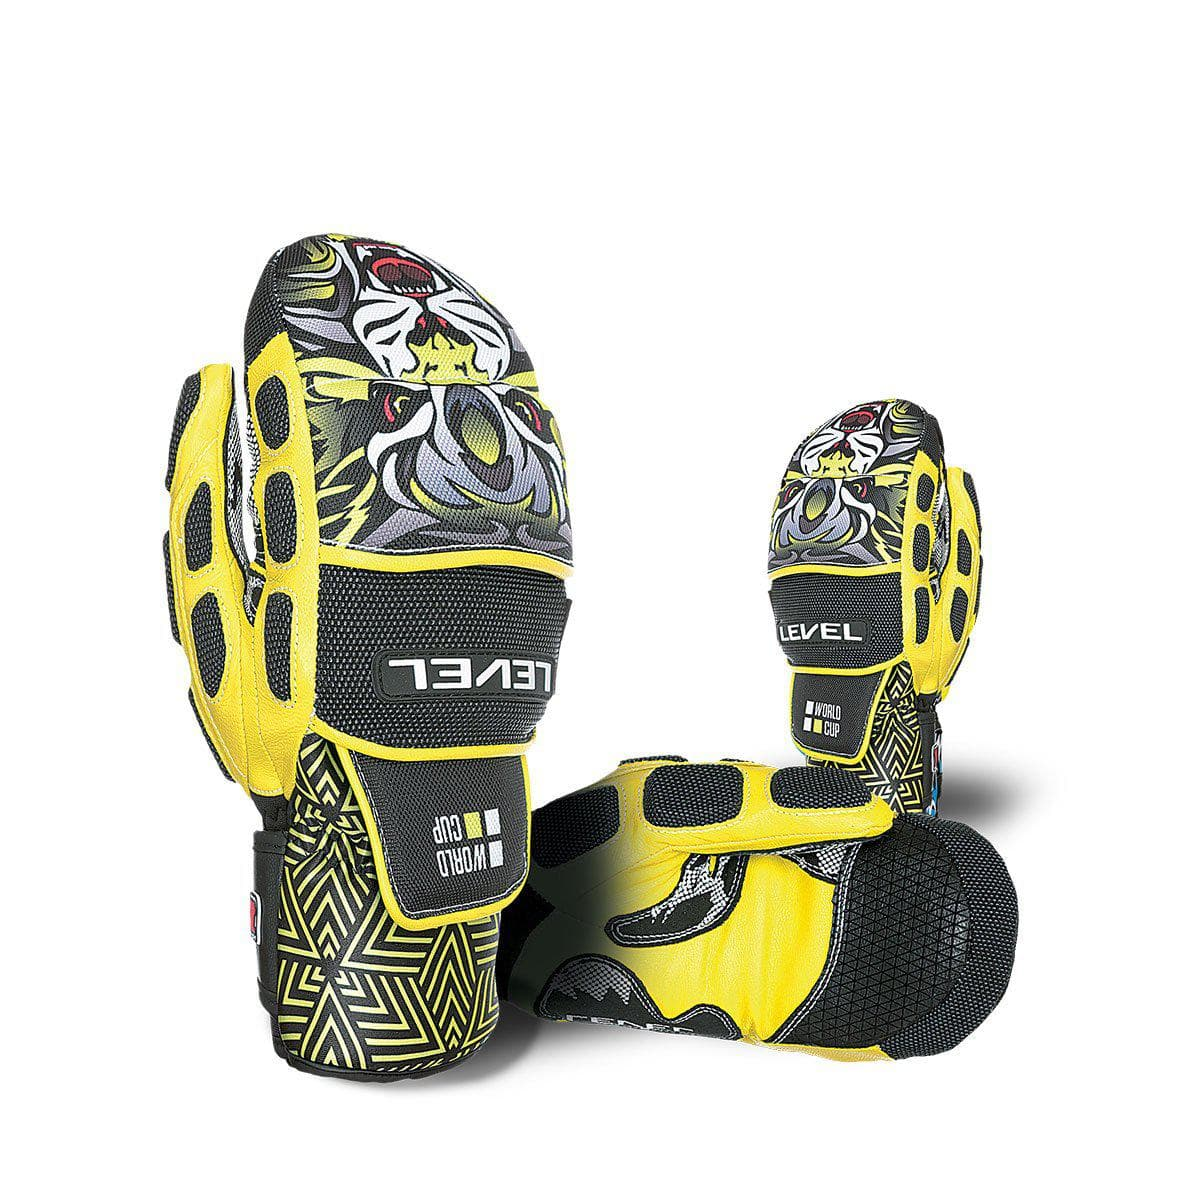 Level WorldCup CF Adult Mitt 2019